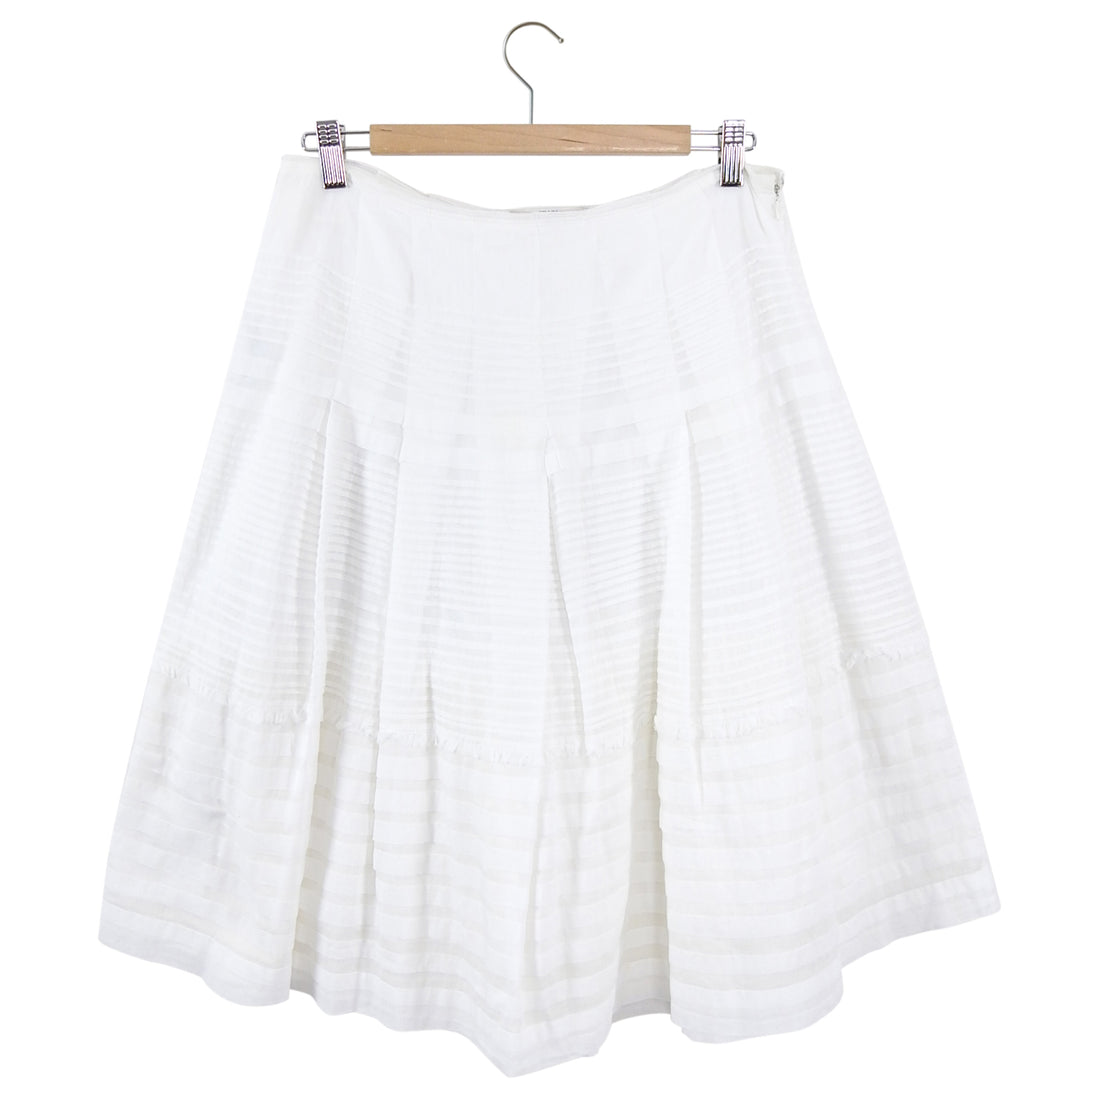 Prada White Cotton Flare Knee Length Skirt - L (8/10)